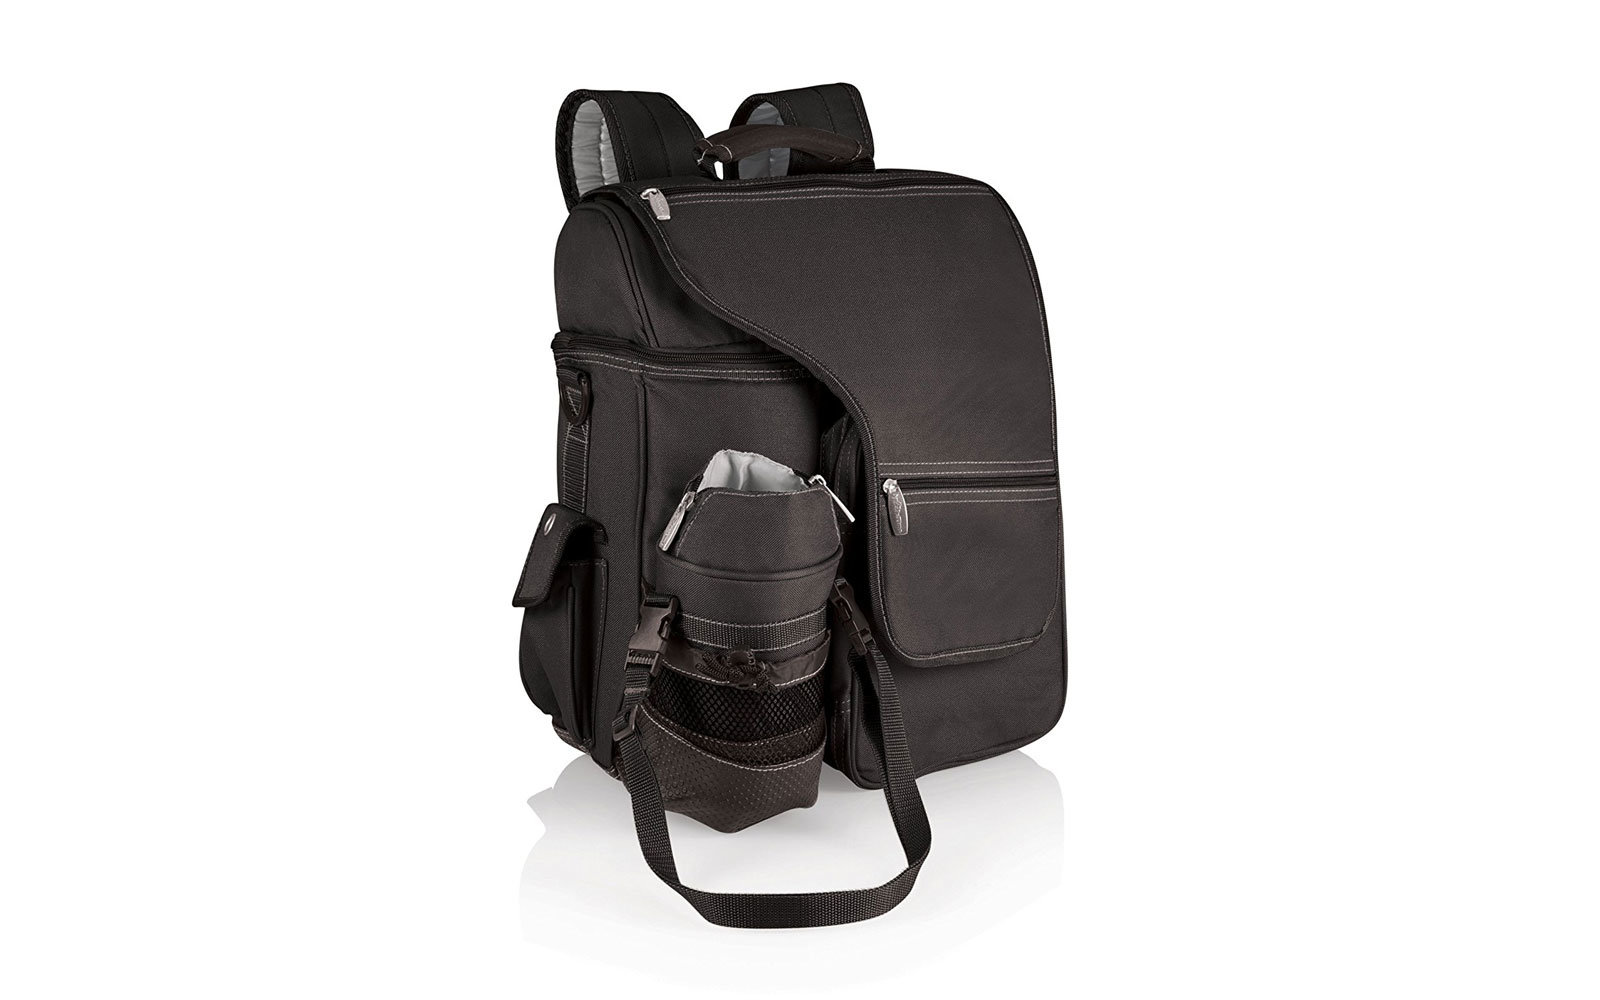 Turismo Insulated Cooler Backpack